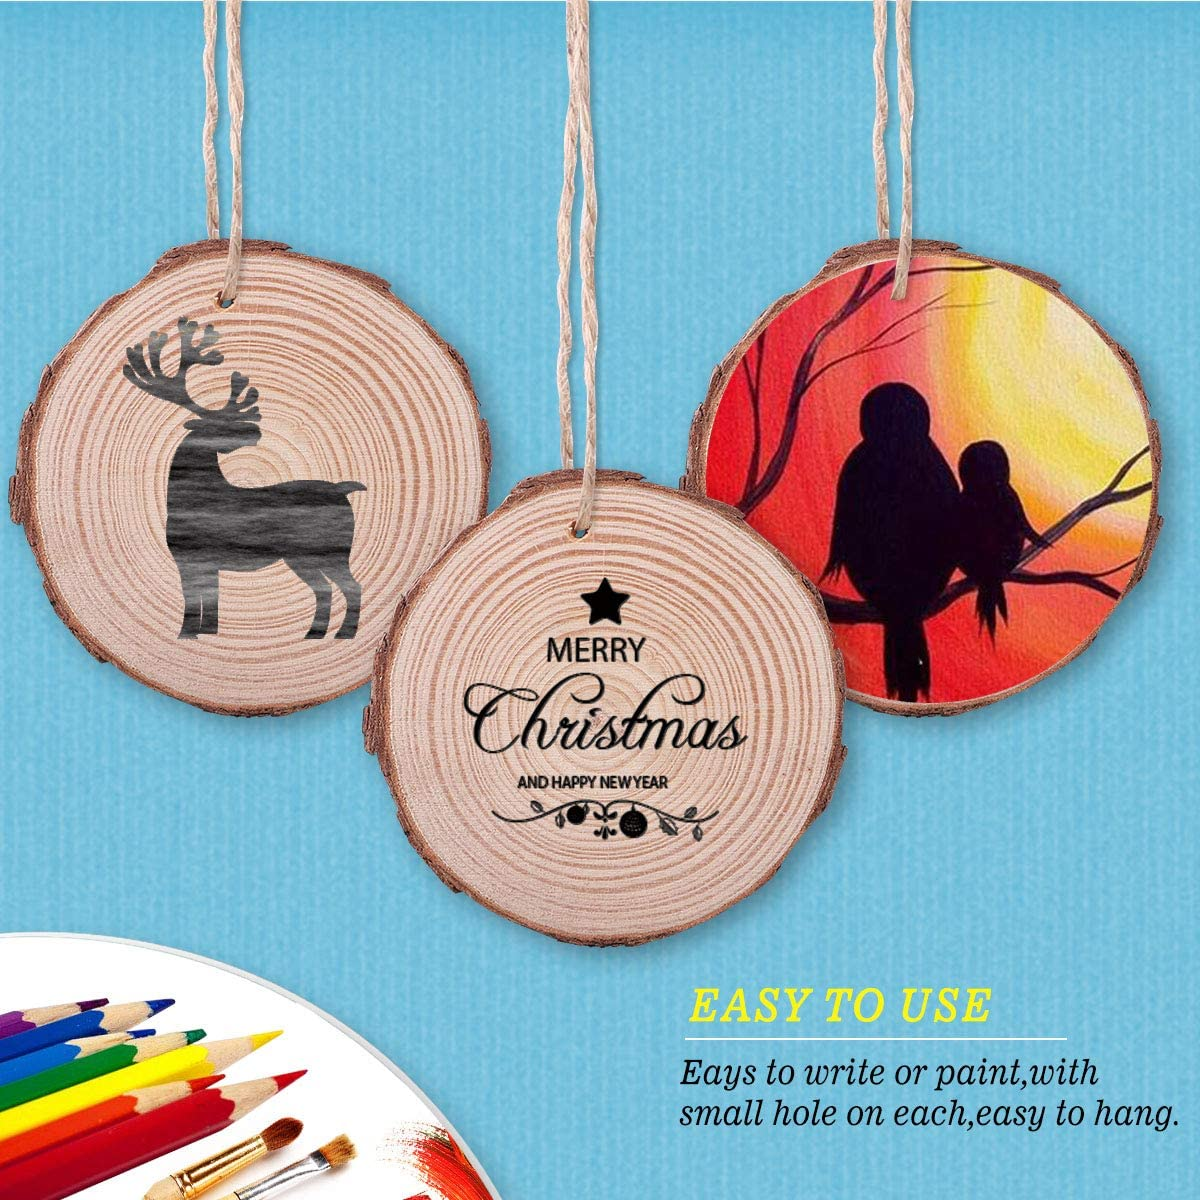 SanGlory Unfinished Wood Slices 30Pcs 2.4-2.8 Natural Craft Wood Circles with Hole Predrilled Blank Wood Burning Discs Wooden Ornaments with 33Ft Twines for DIY Crafts Christmas Hanging Decoration